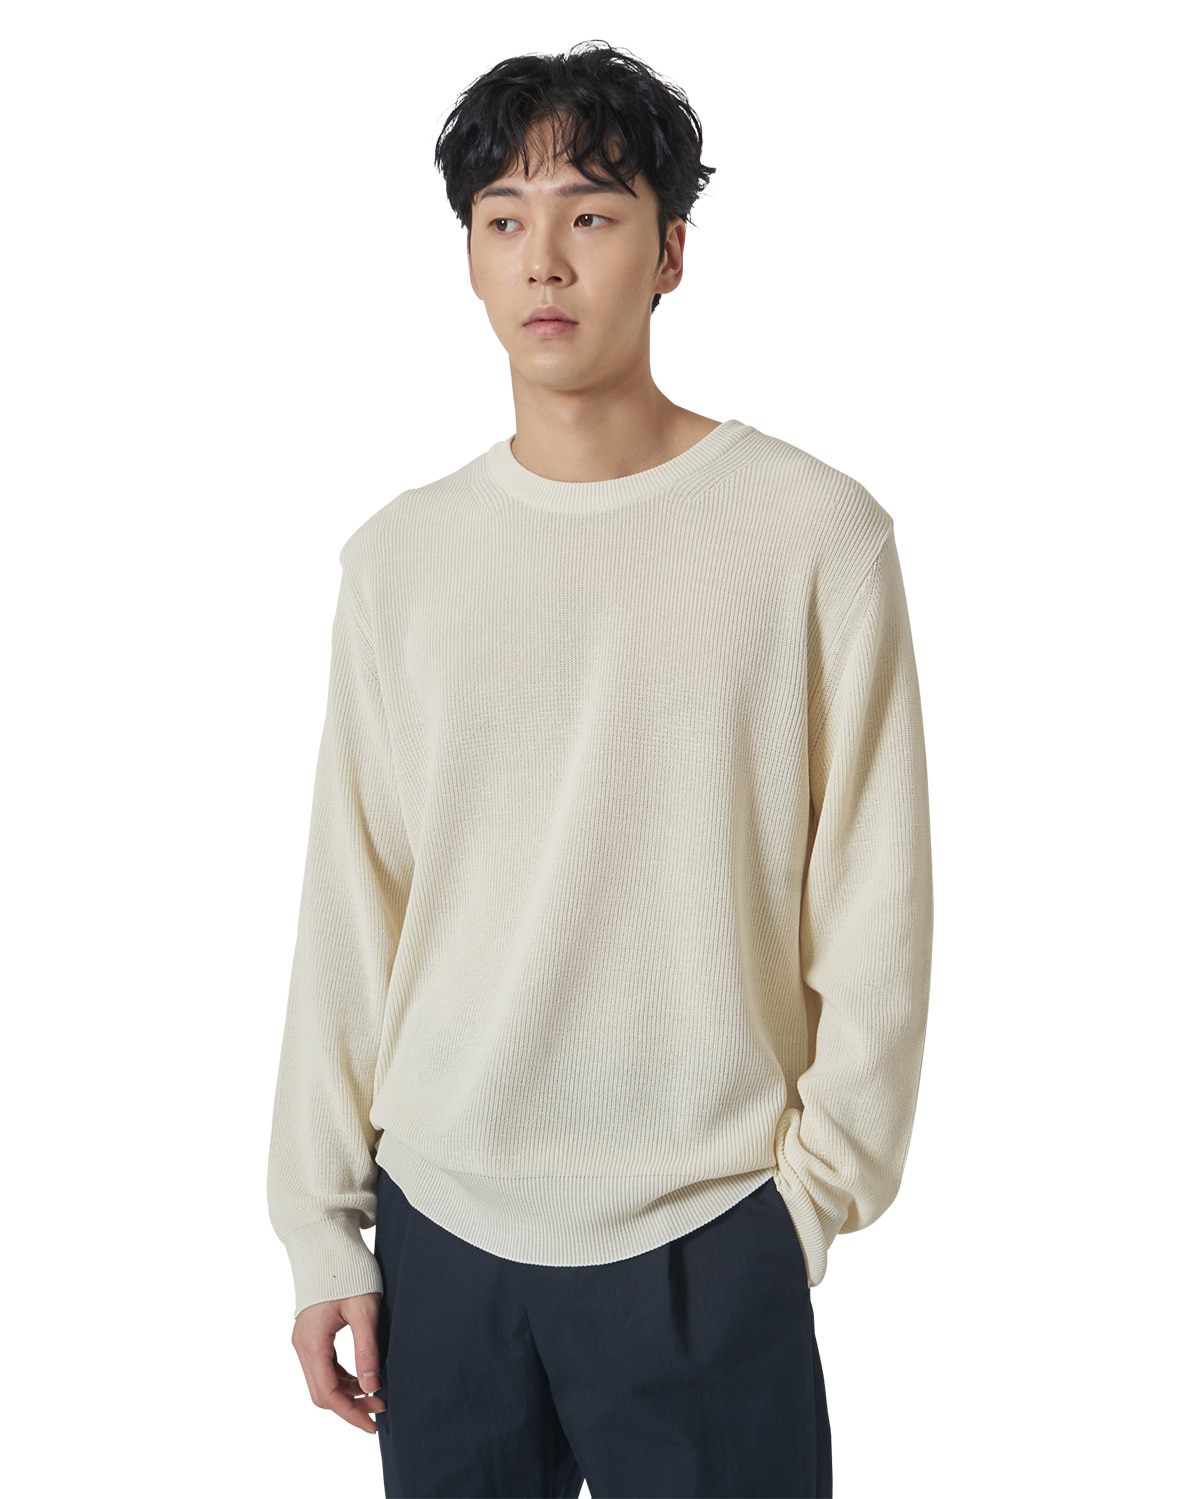 Relaxed Cotton Knit _ cream